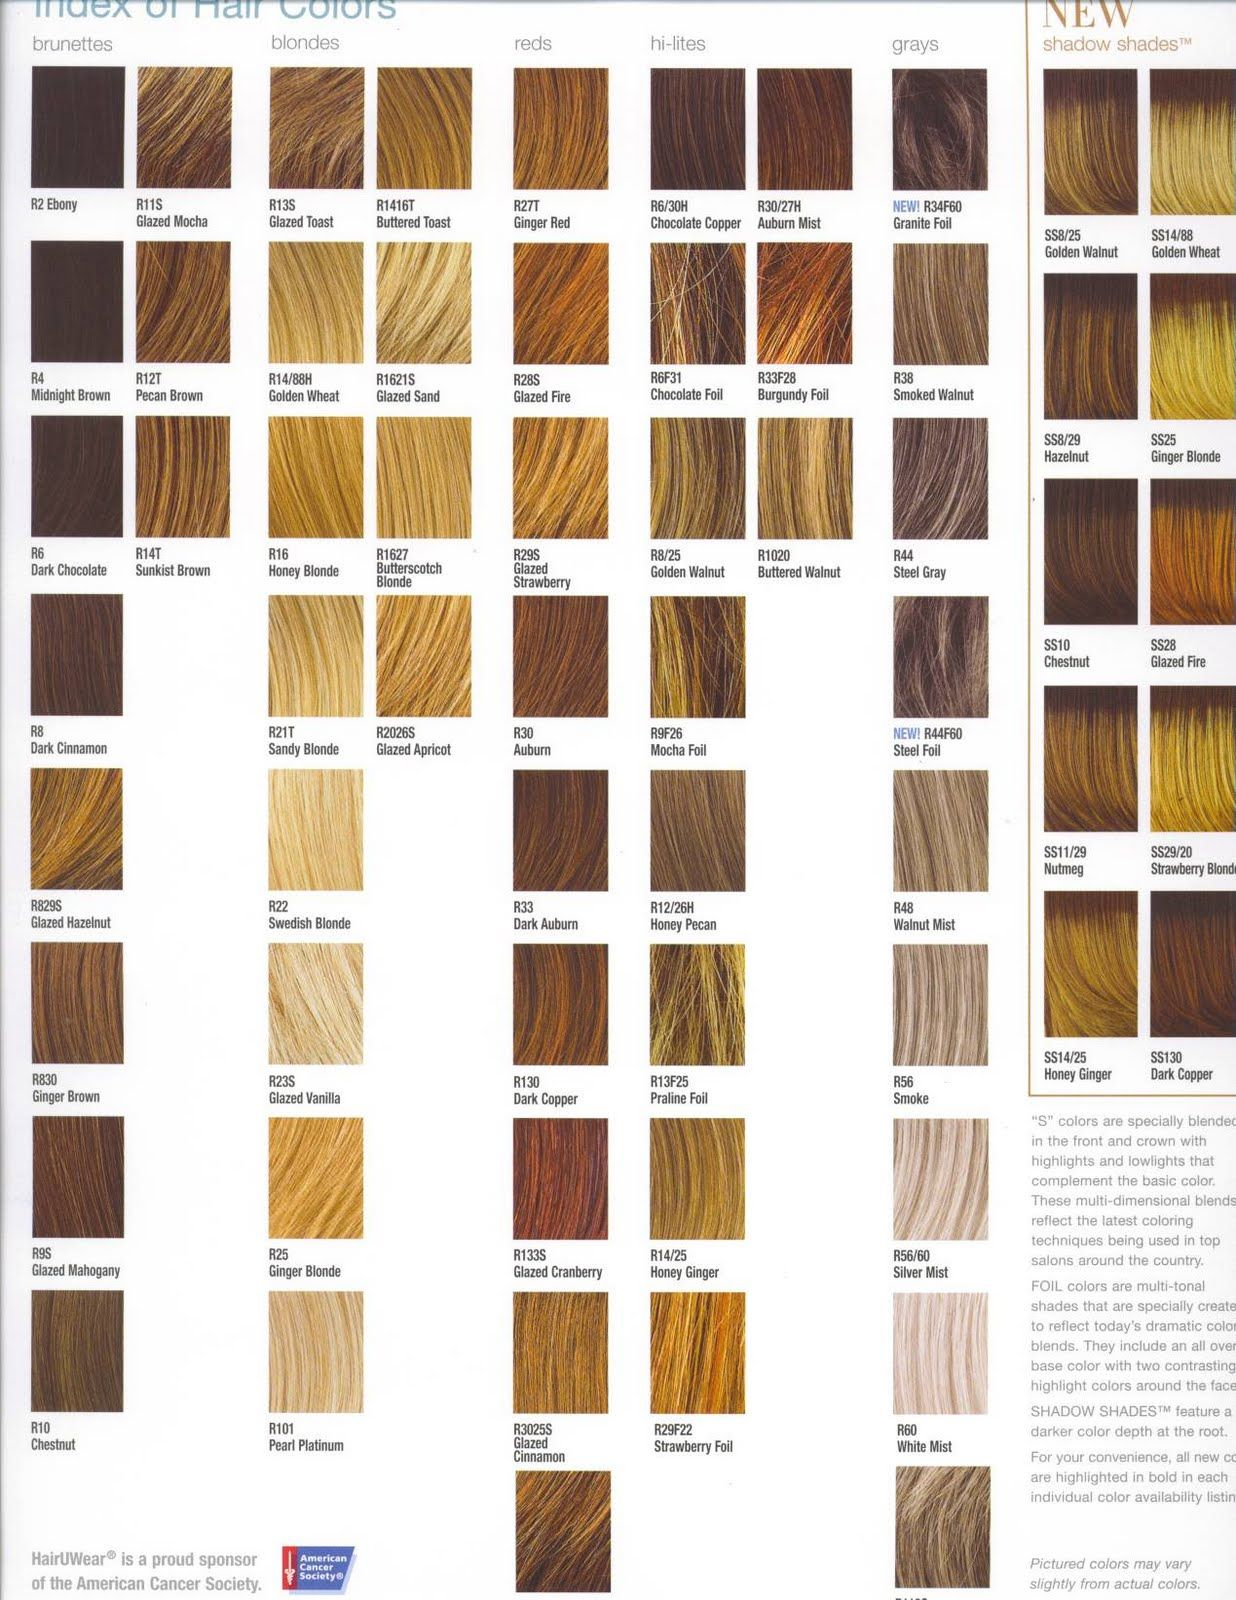 Shades Of Blonde Hair Color Chart Hair Color Chart Hair Color Names Hair Color Shades